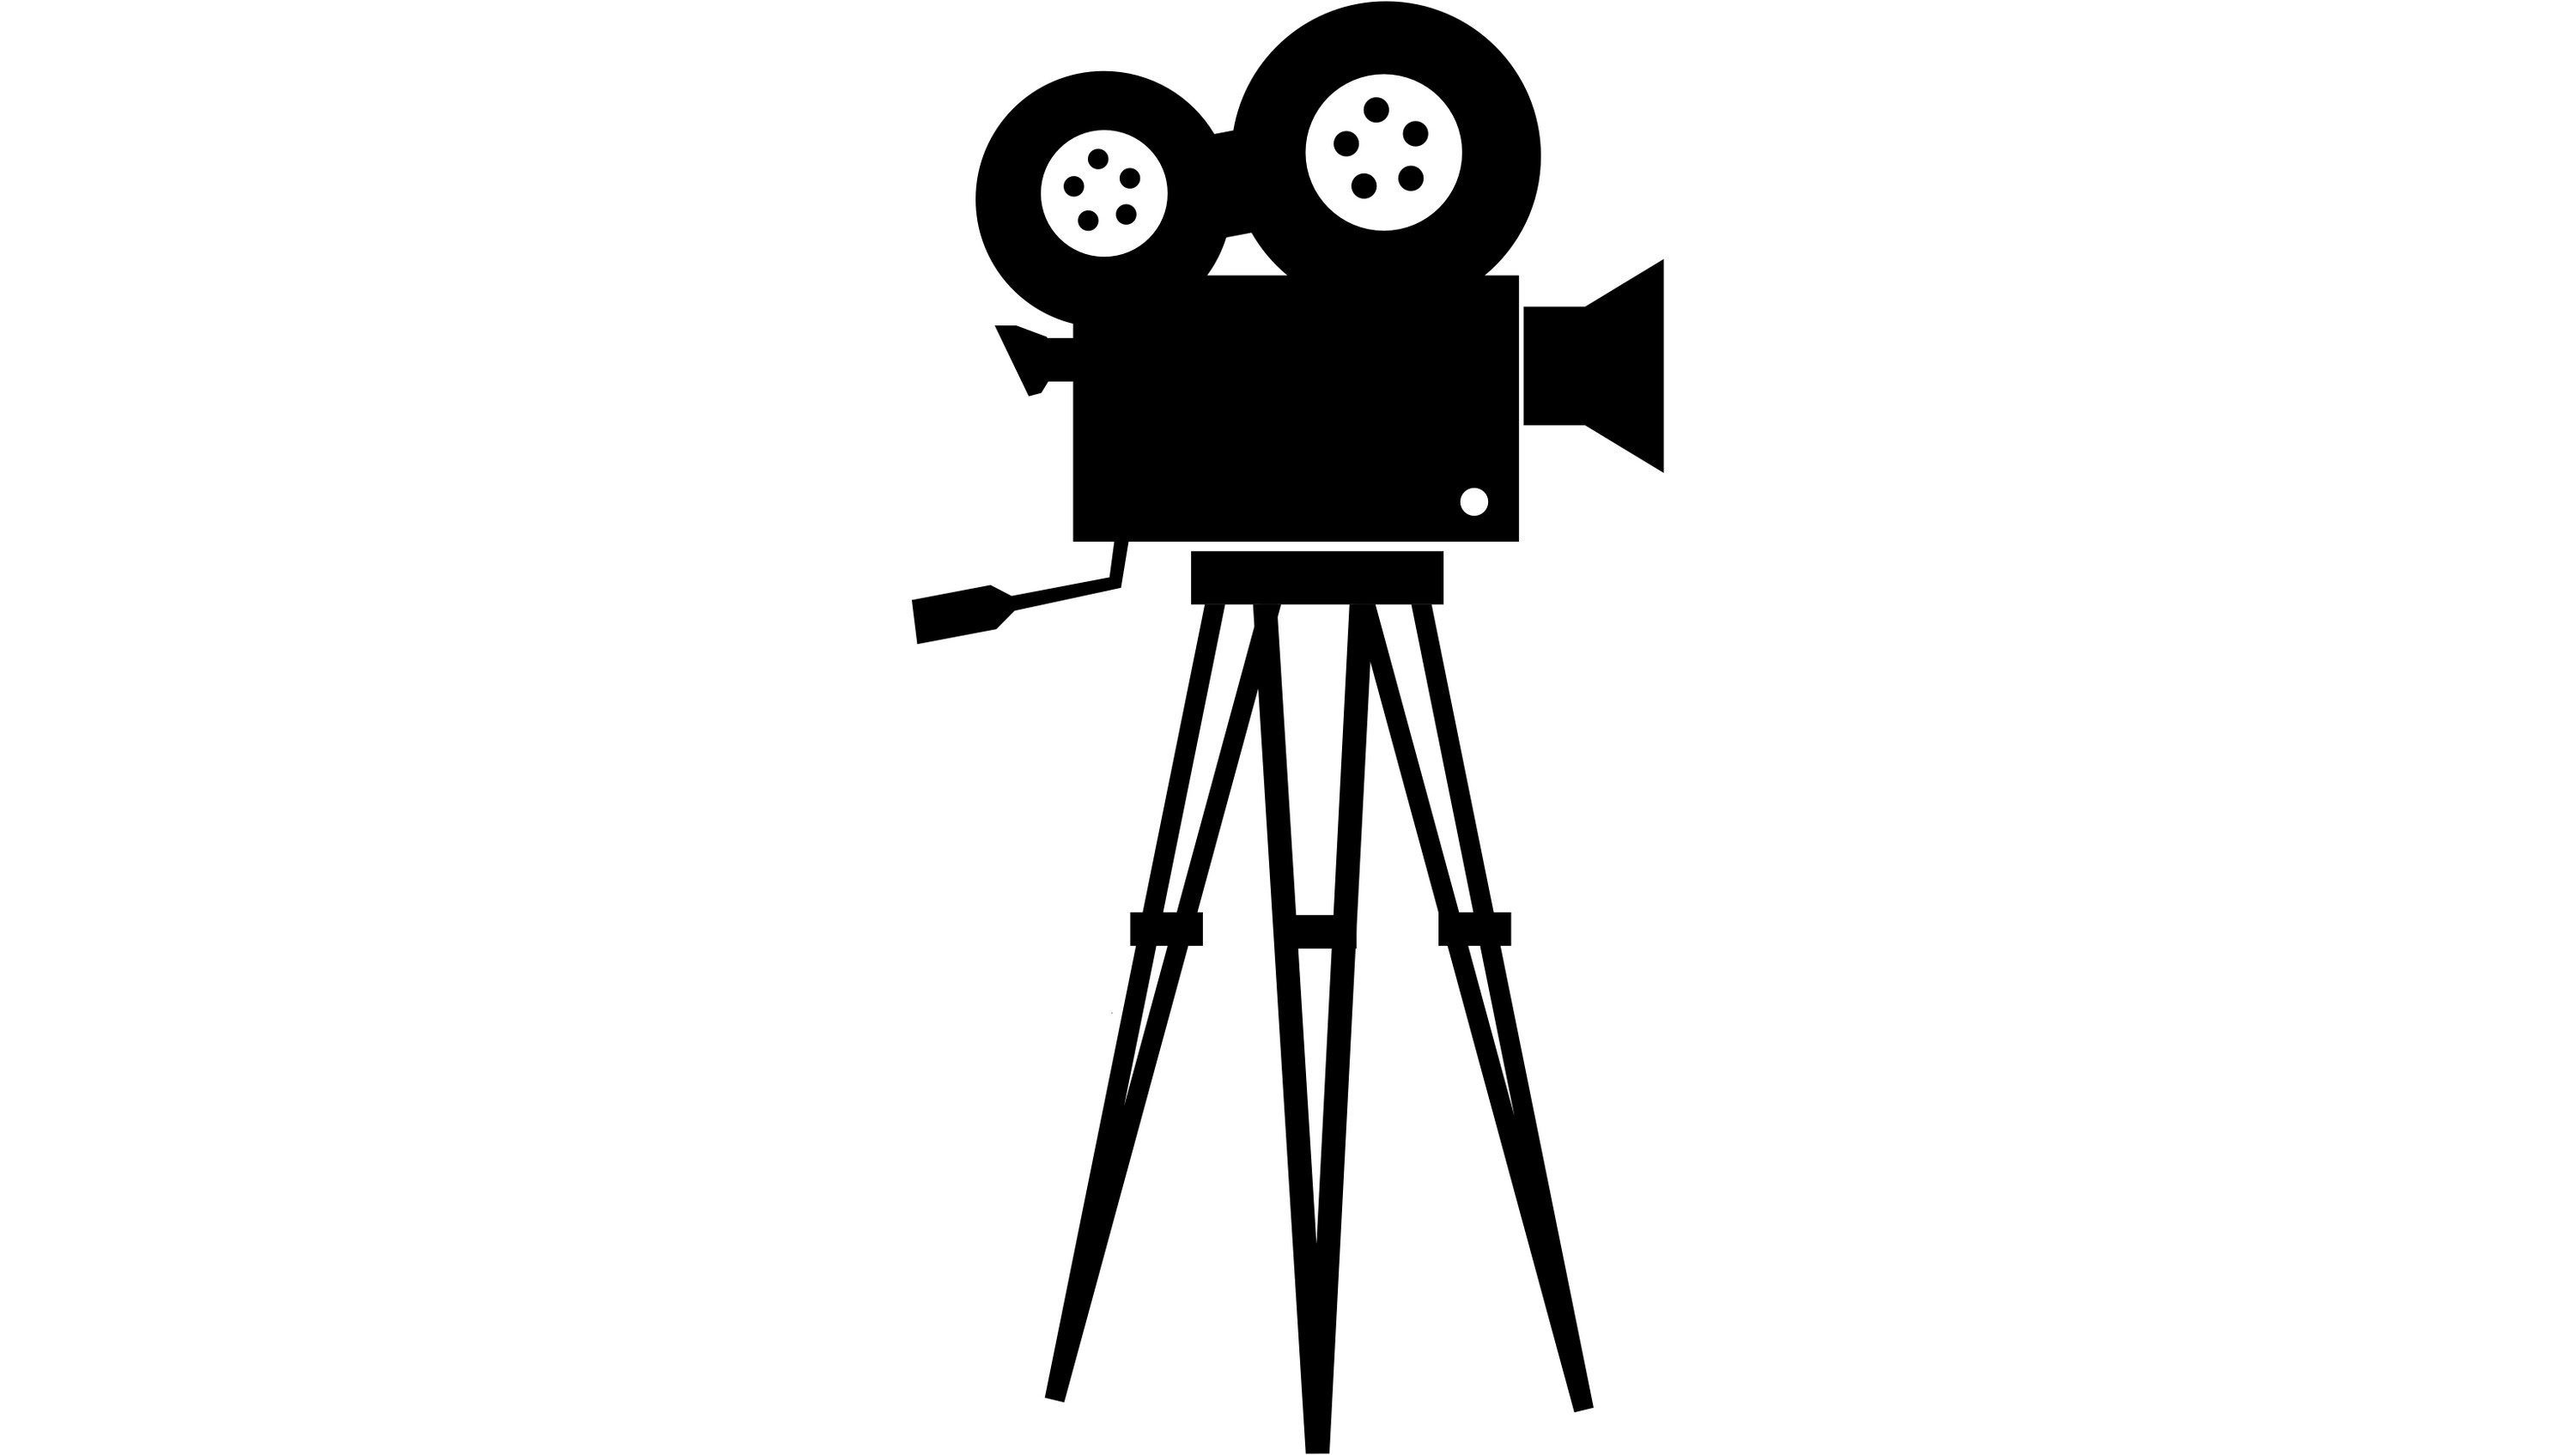 Old Movie Camera Sound Effect Youtube-Old Movie Camera Sound Effect Youtube-12